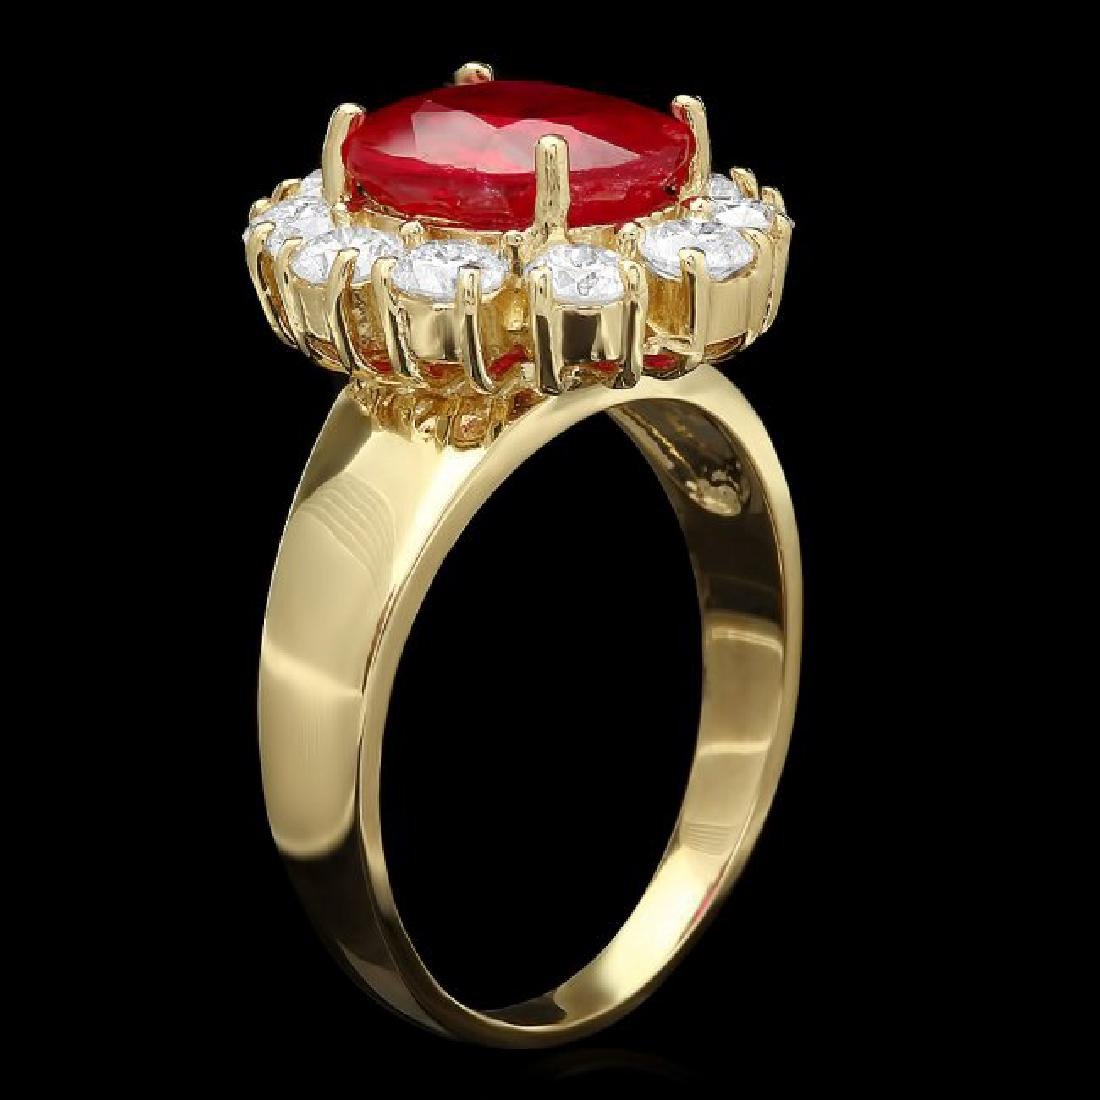 14k Yellow Gold 3.50ct Ruby 1.30ct Diamond Ring - 2